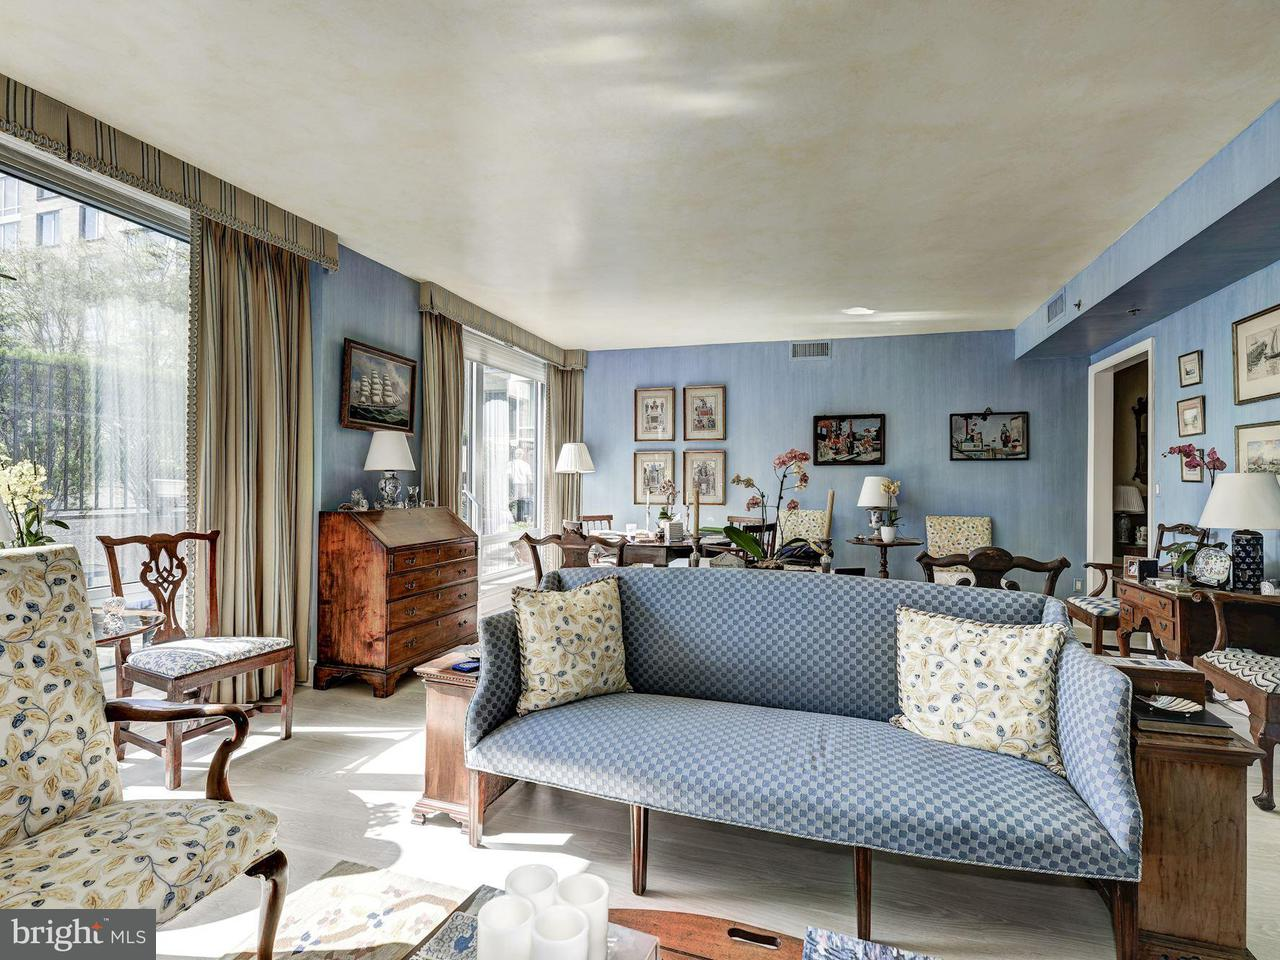 Additional photo for property listing at 1155 23rd St Nw #5k 1155 23rd St Nw #5k Washington, コロンビア特別区 20037 アメリカ合衆国